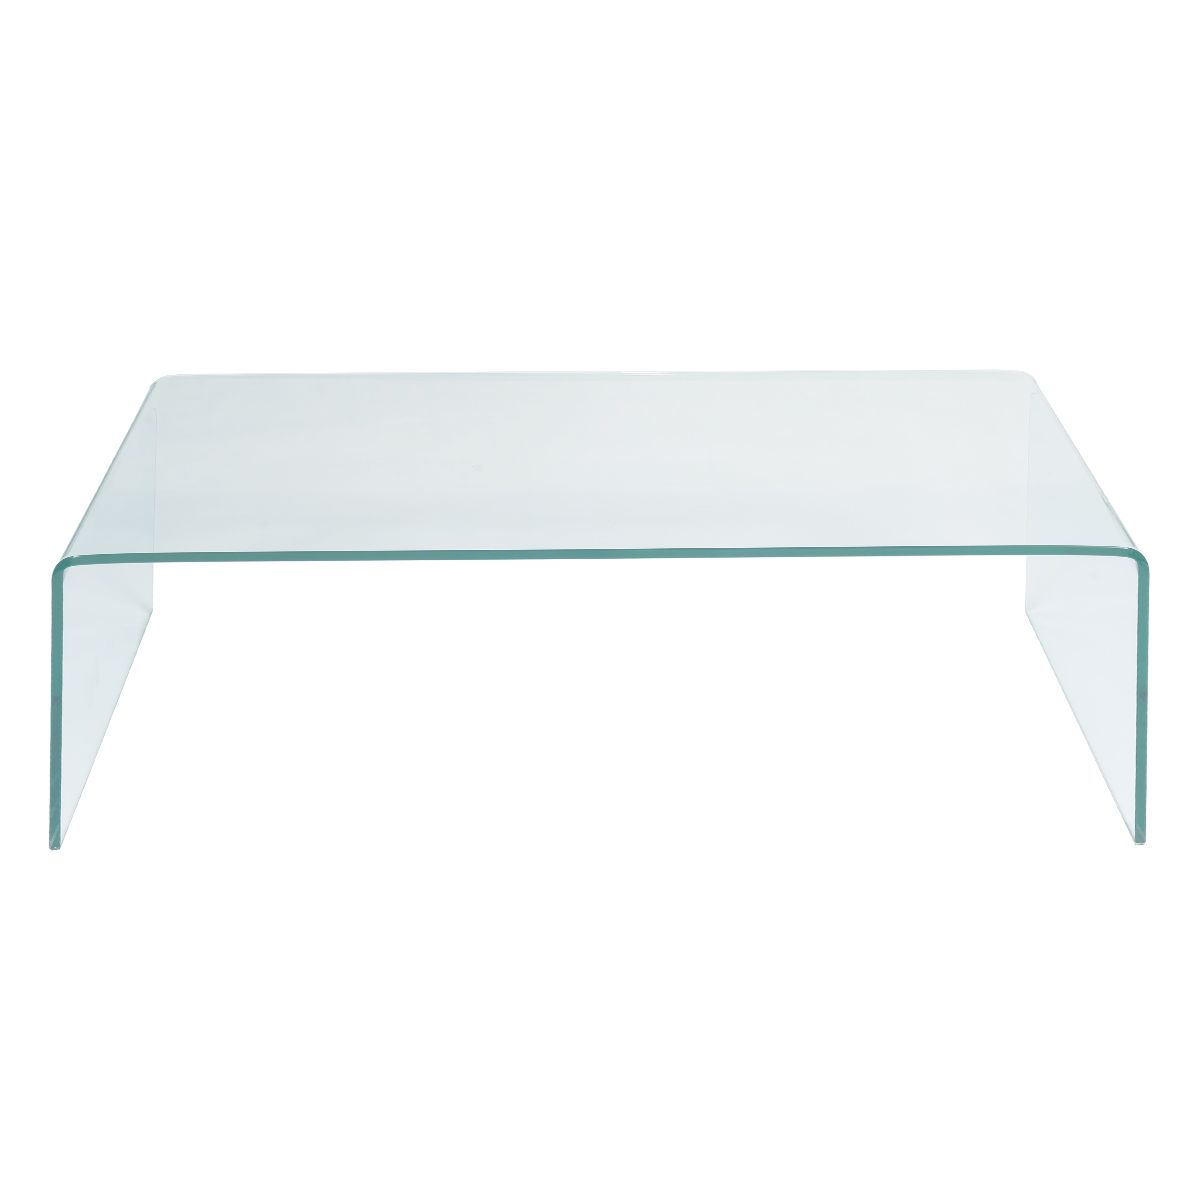 Topbuy Tempered Glass Coffee Table Accent Cocktail Side Table Living Room Furniture Walmart Com In 2021 Acrylic Coffee Table Living Room Side Table Coffee Table [ 1200 x 1200 Pixel ]